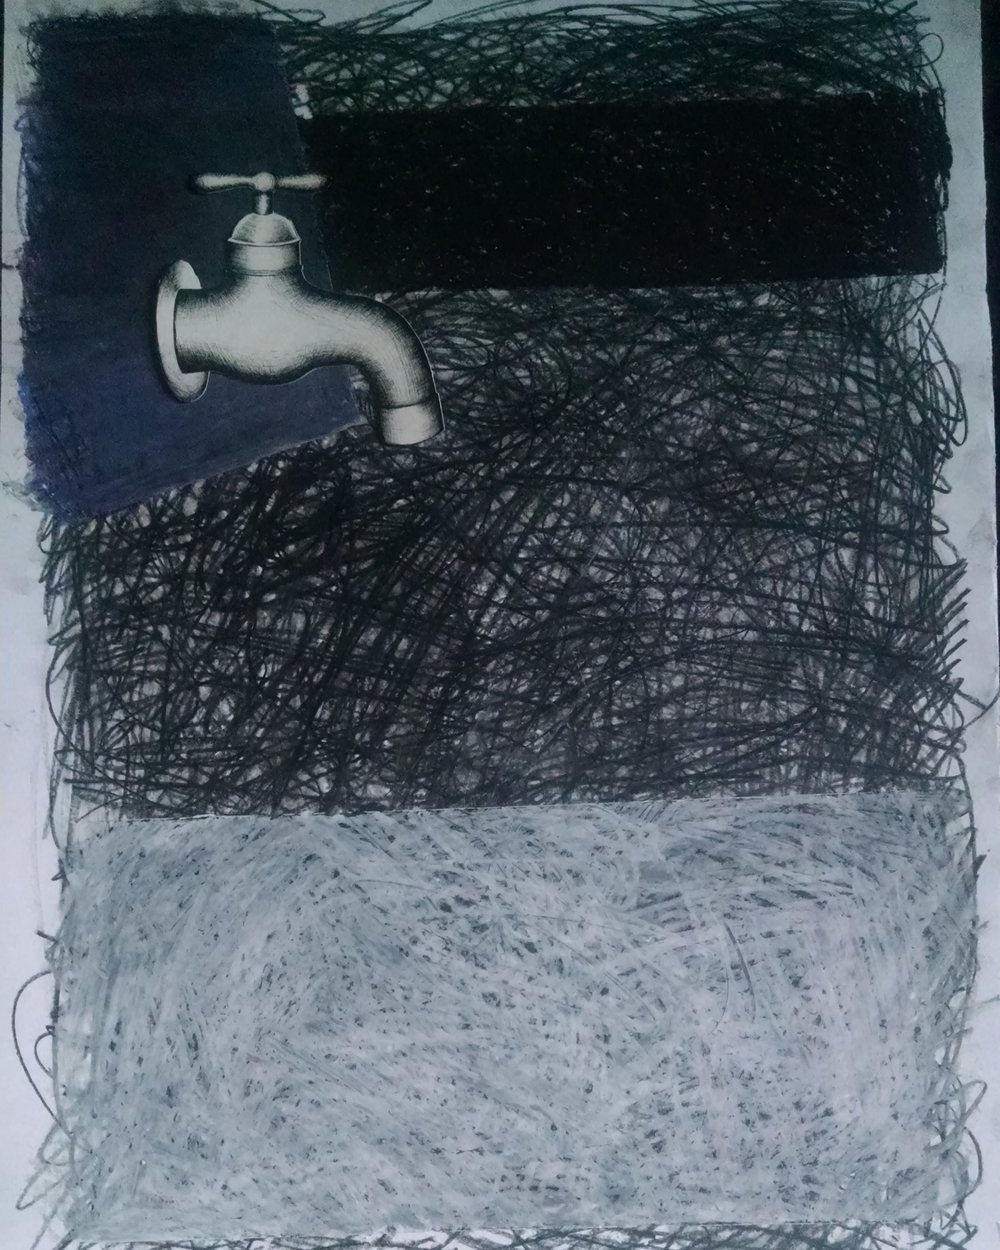 Drawing a faucet and collaging it on